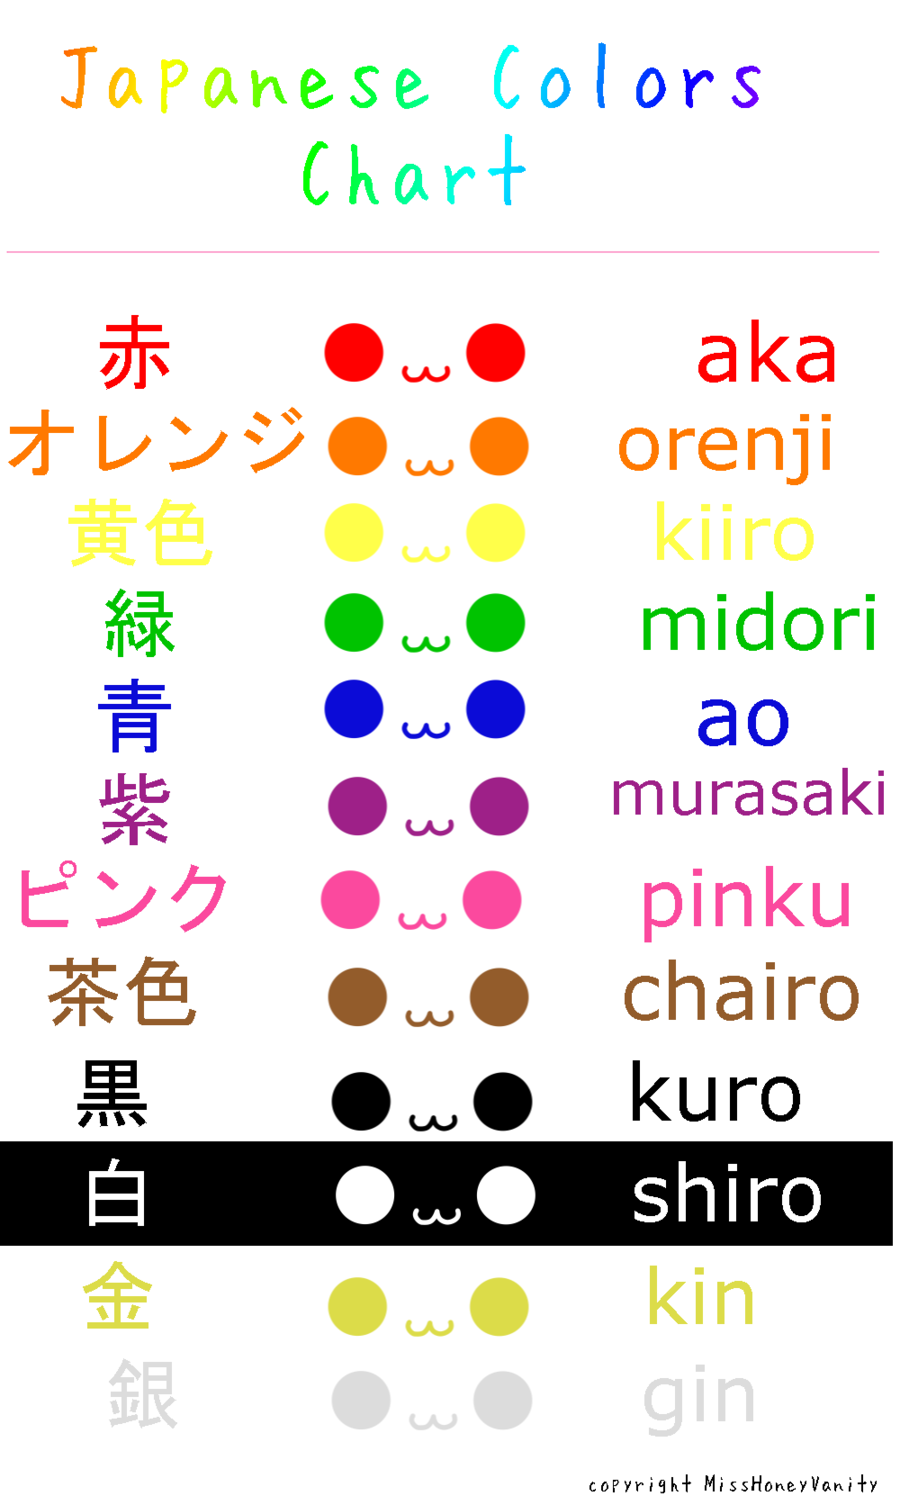 Color game japanese - Colors In Japanese I Knew Most Of These From Kuroko No Basket Lol